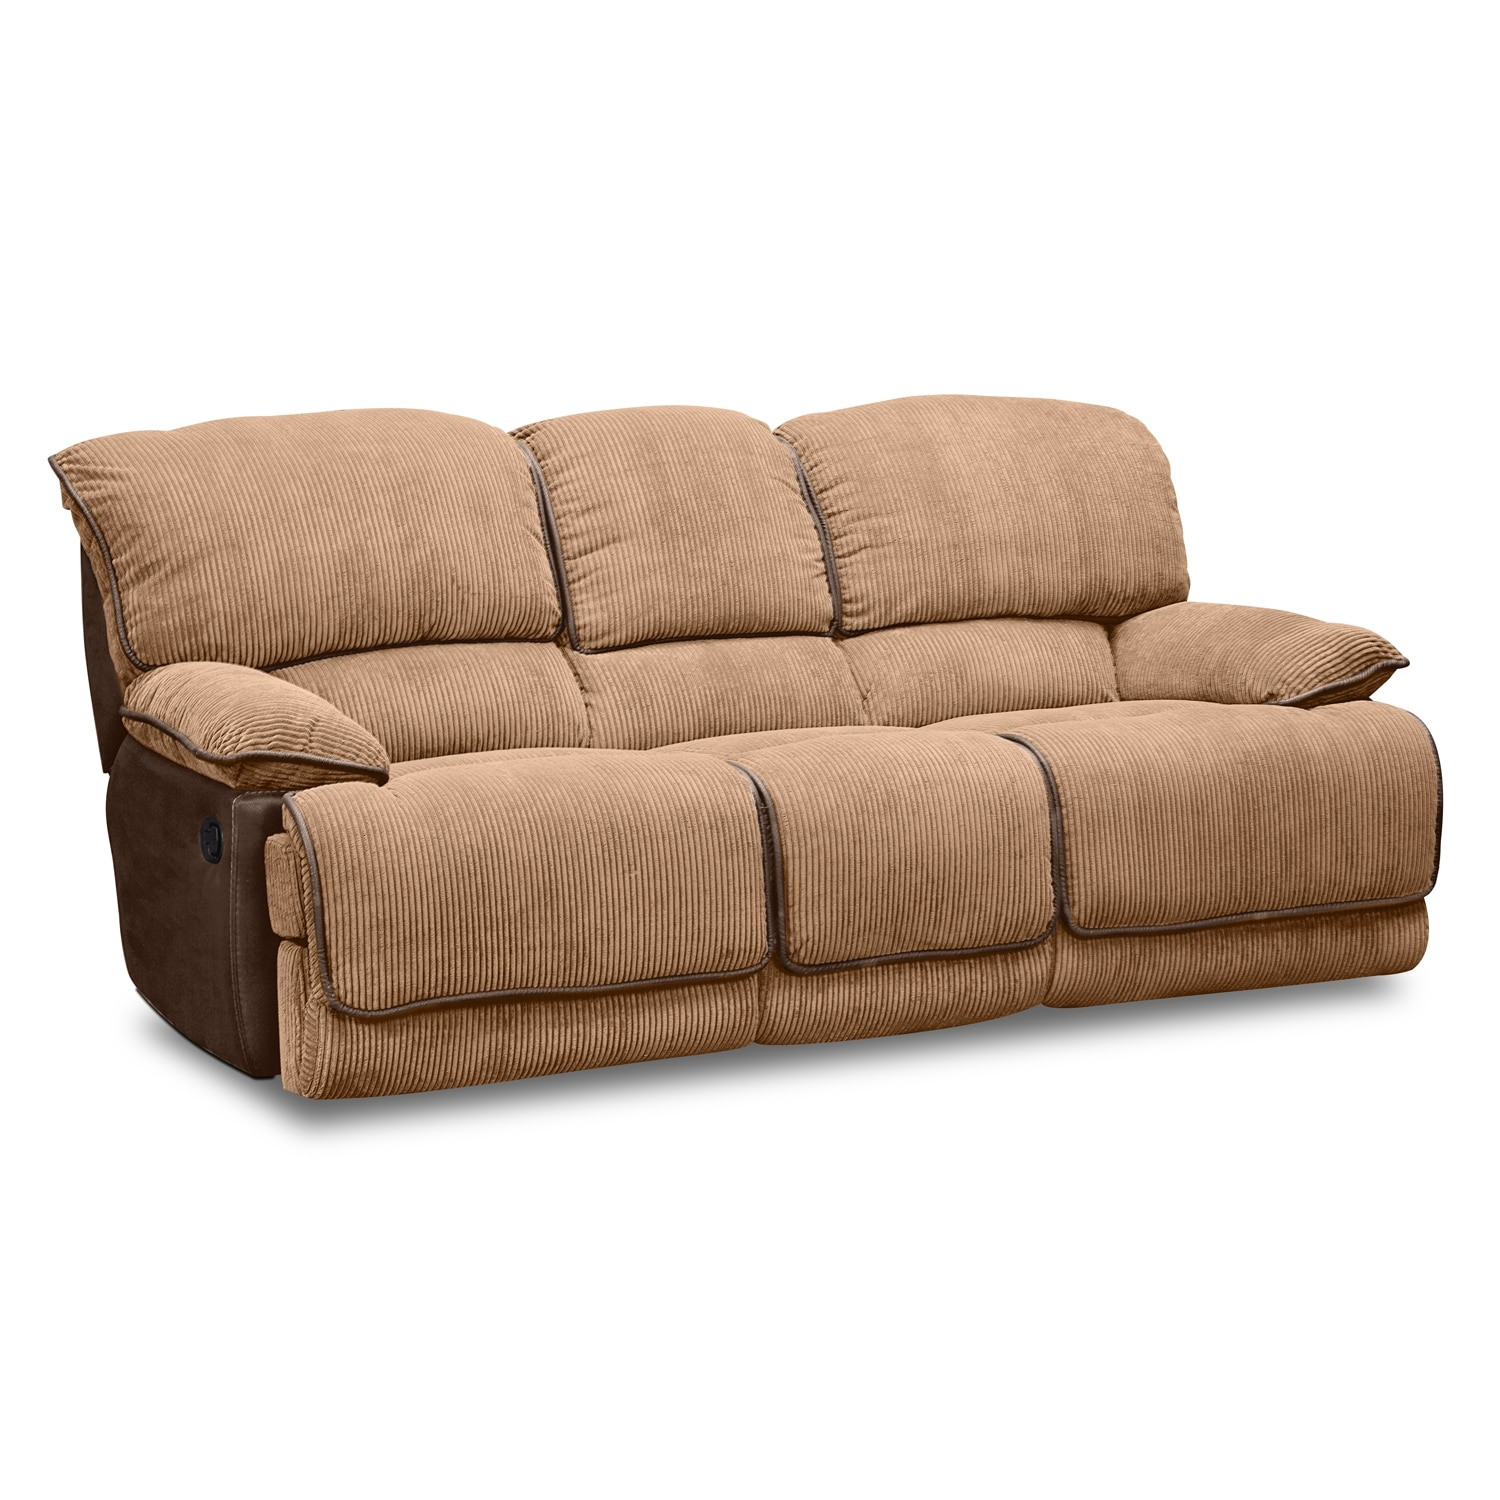 Laguna Reclining Sofa And Gliding Reclining Loveseat Set Camel Value City Furniture